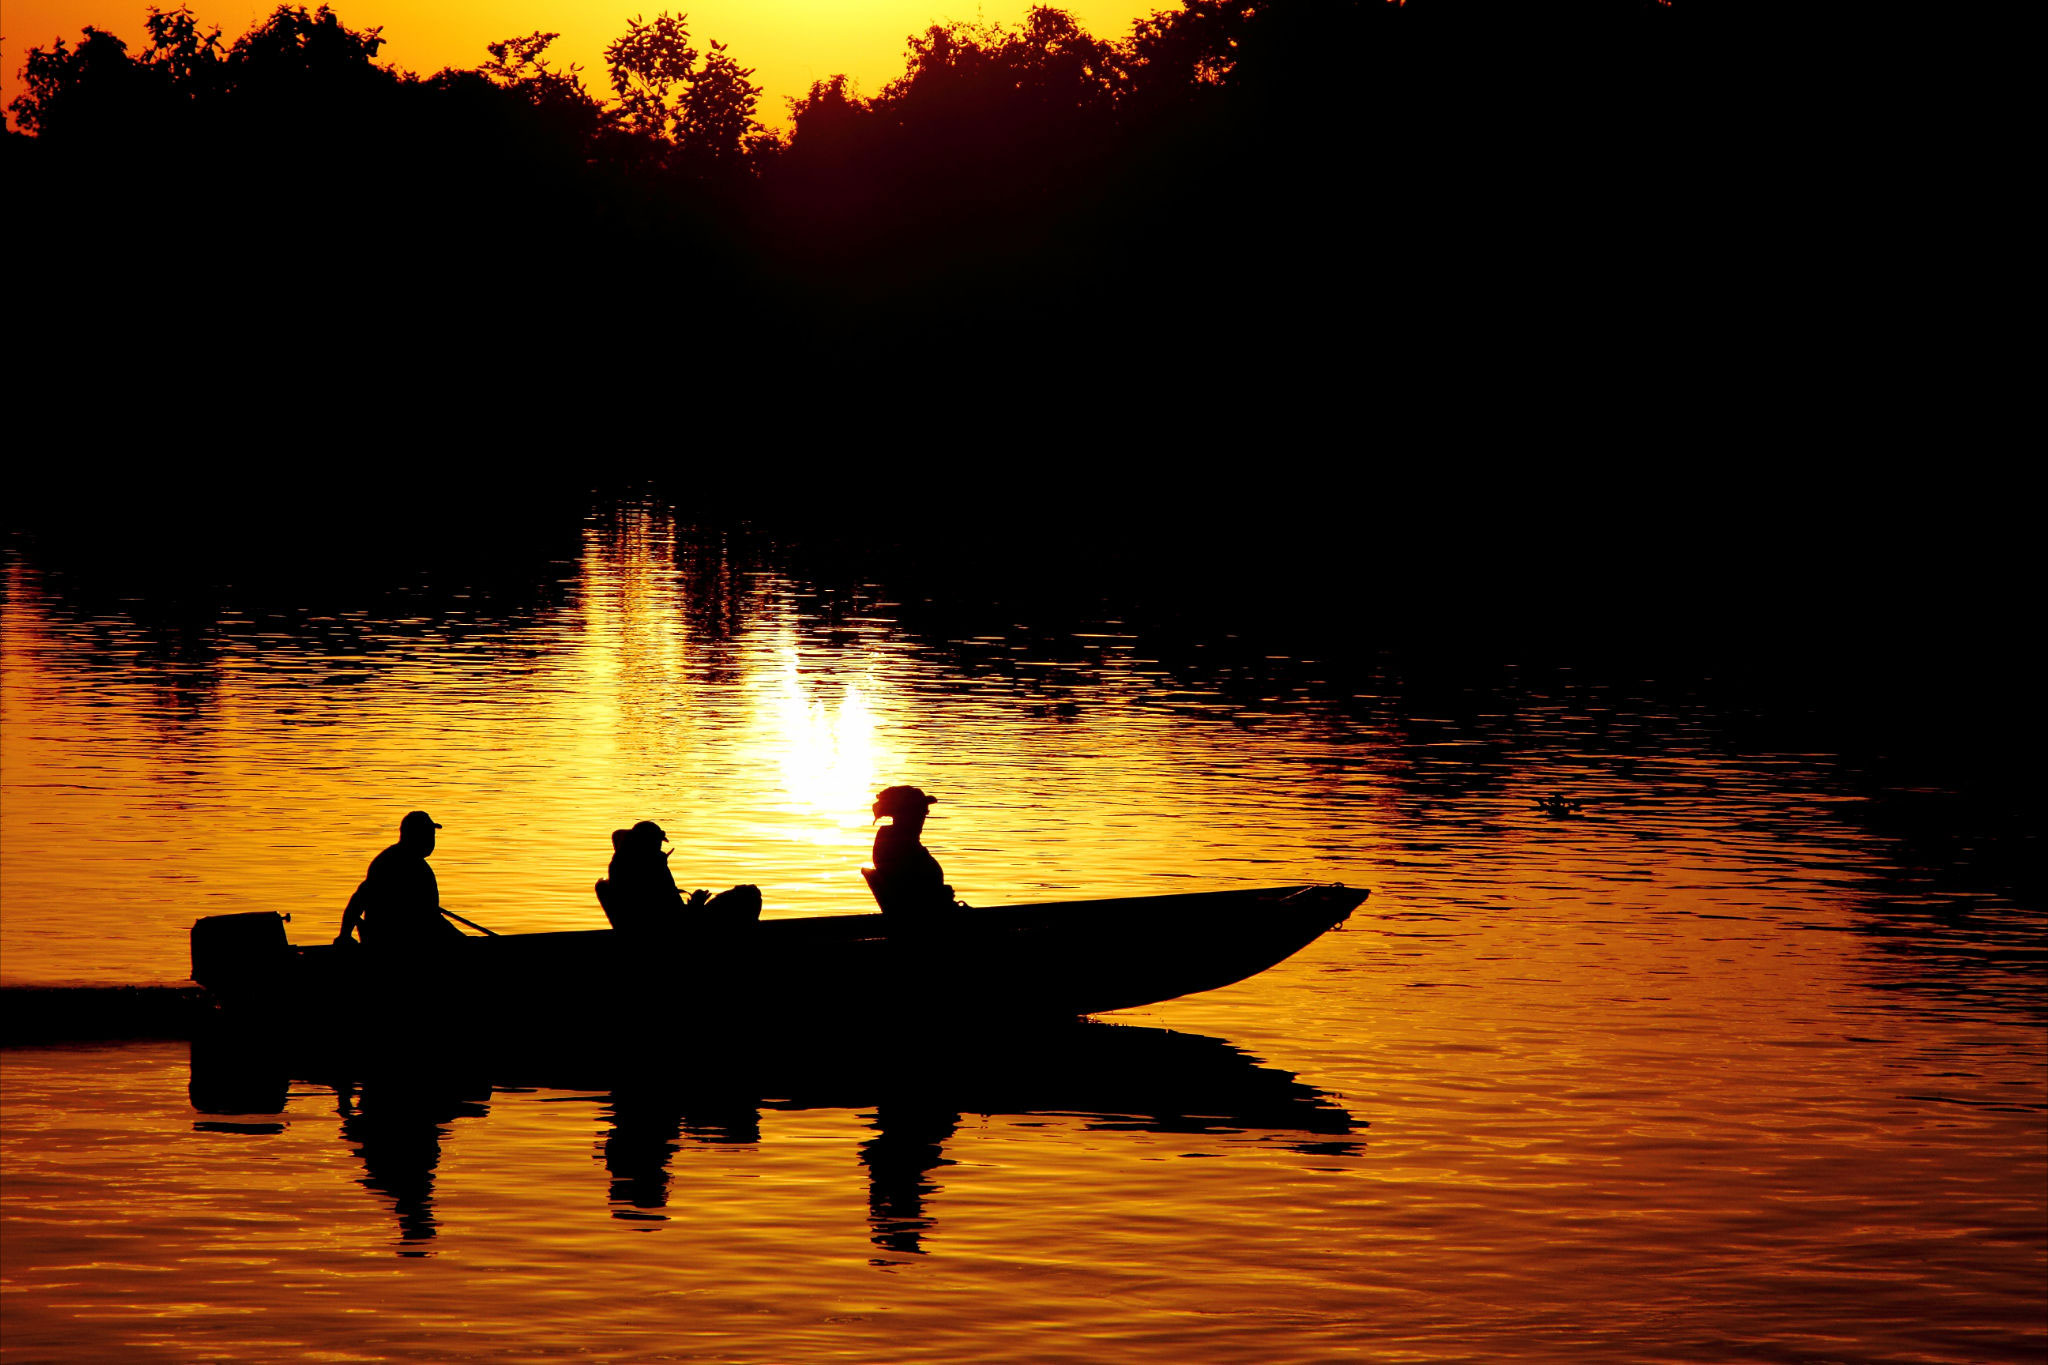 Pantanal-Jaguar-House-Boat-Golden-Sunset-Brazil-Ecotravel